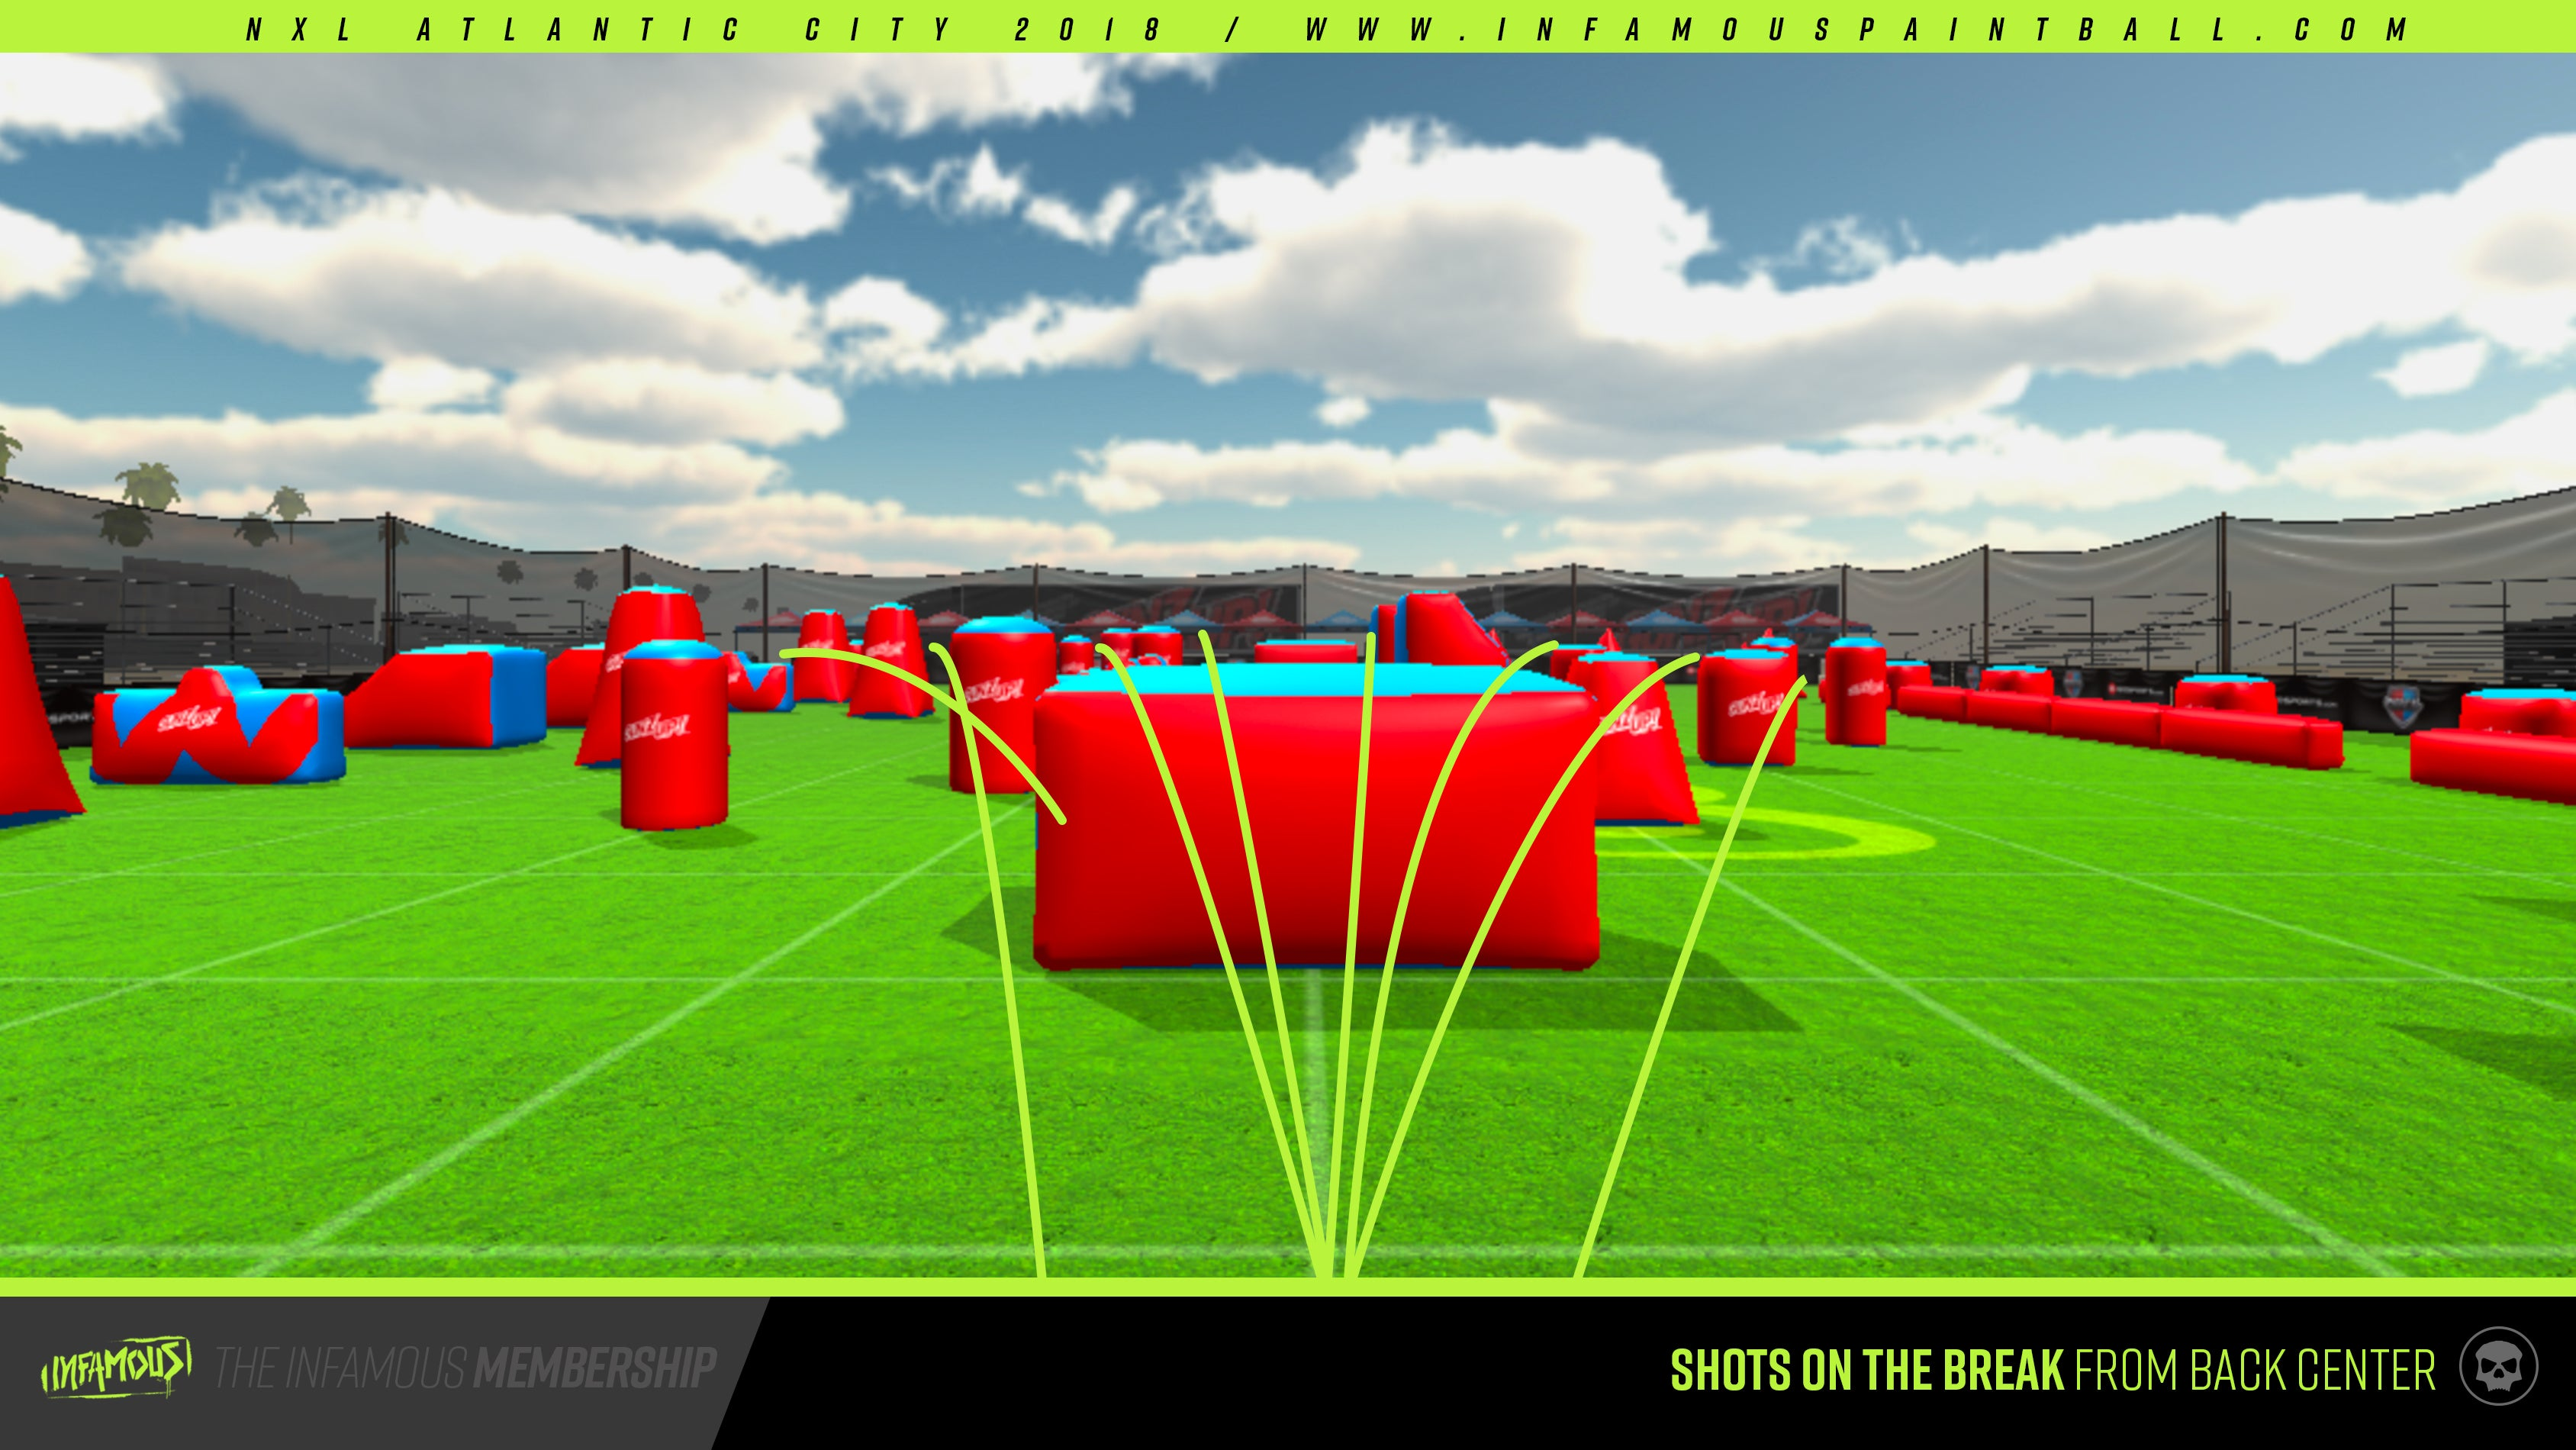 nxl atlantic city 2018 layout release infamous paintball